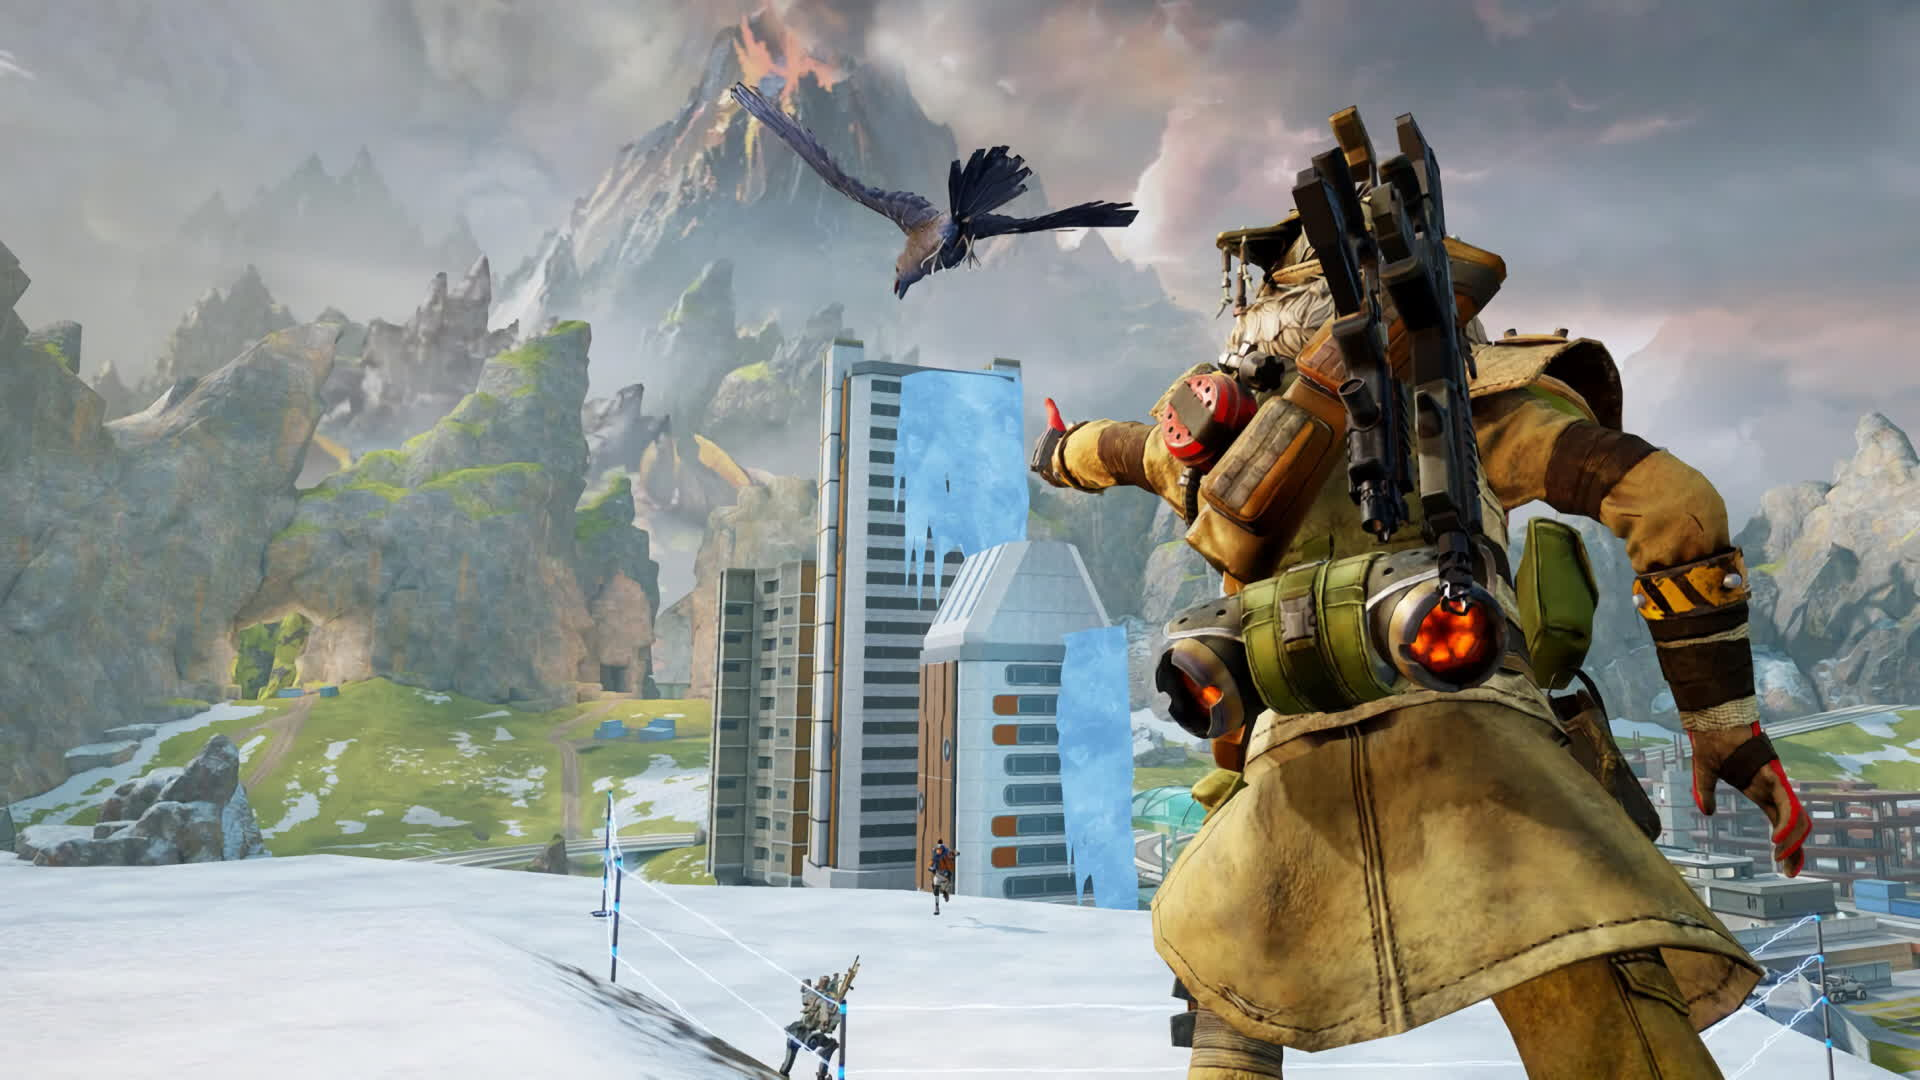 <p>Apex Legends is coming to mobile devices, beta testing begins this month thumbnail